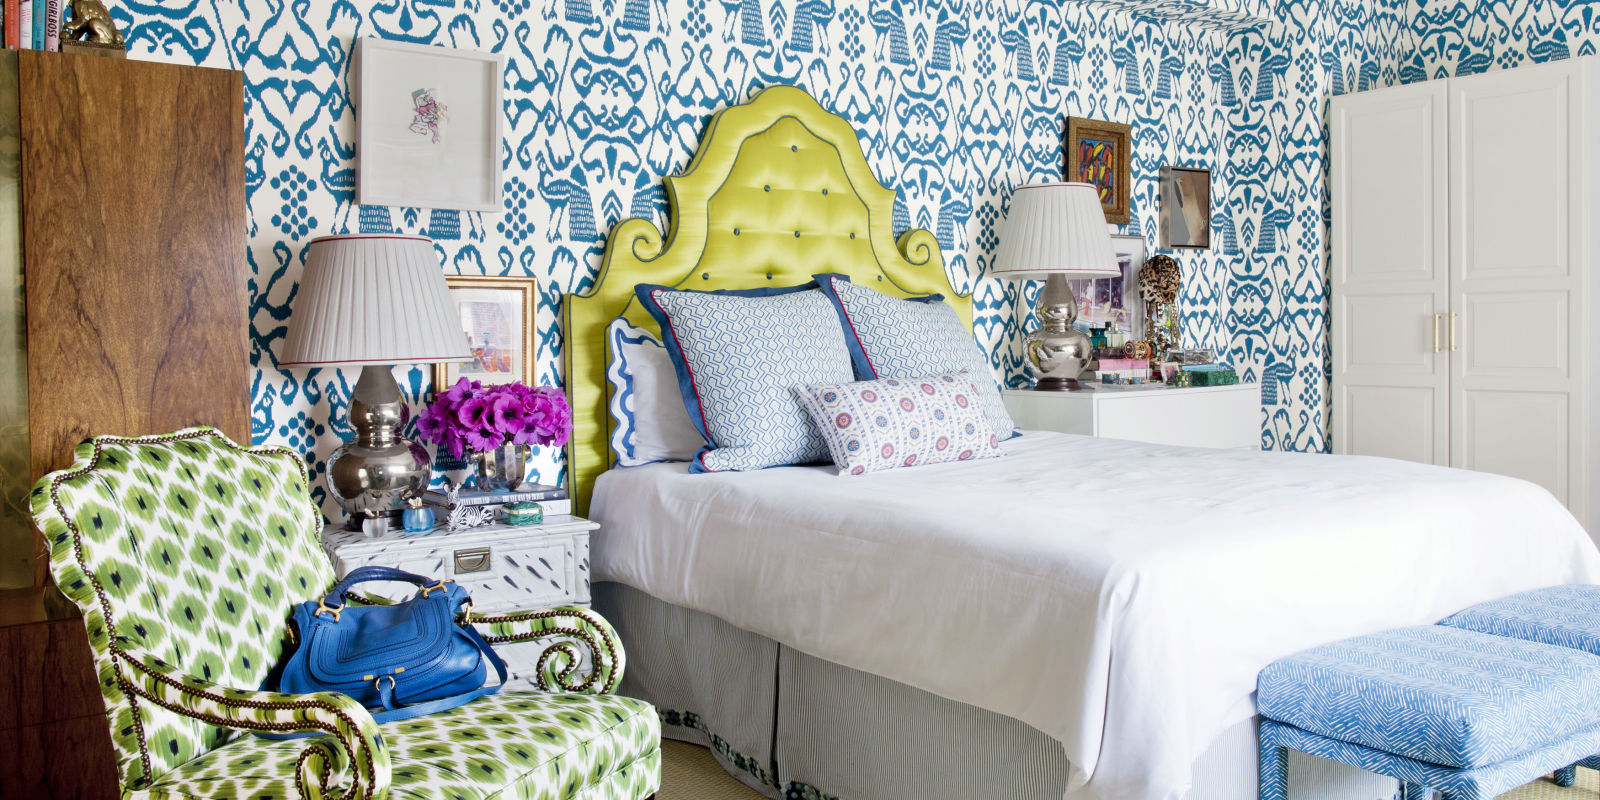 175 Stylish Bedroom Decorating Ideas - Design Pictures of ... on Beautiful Room Decor  id=79910